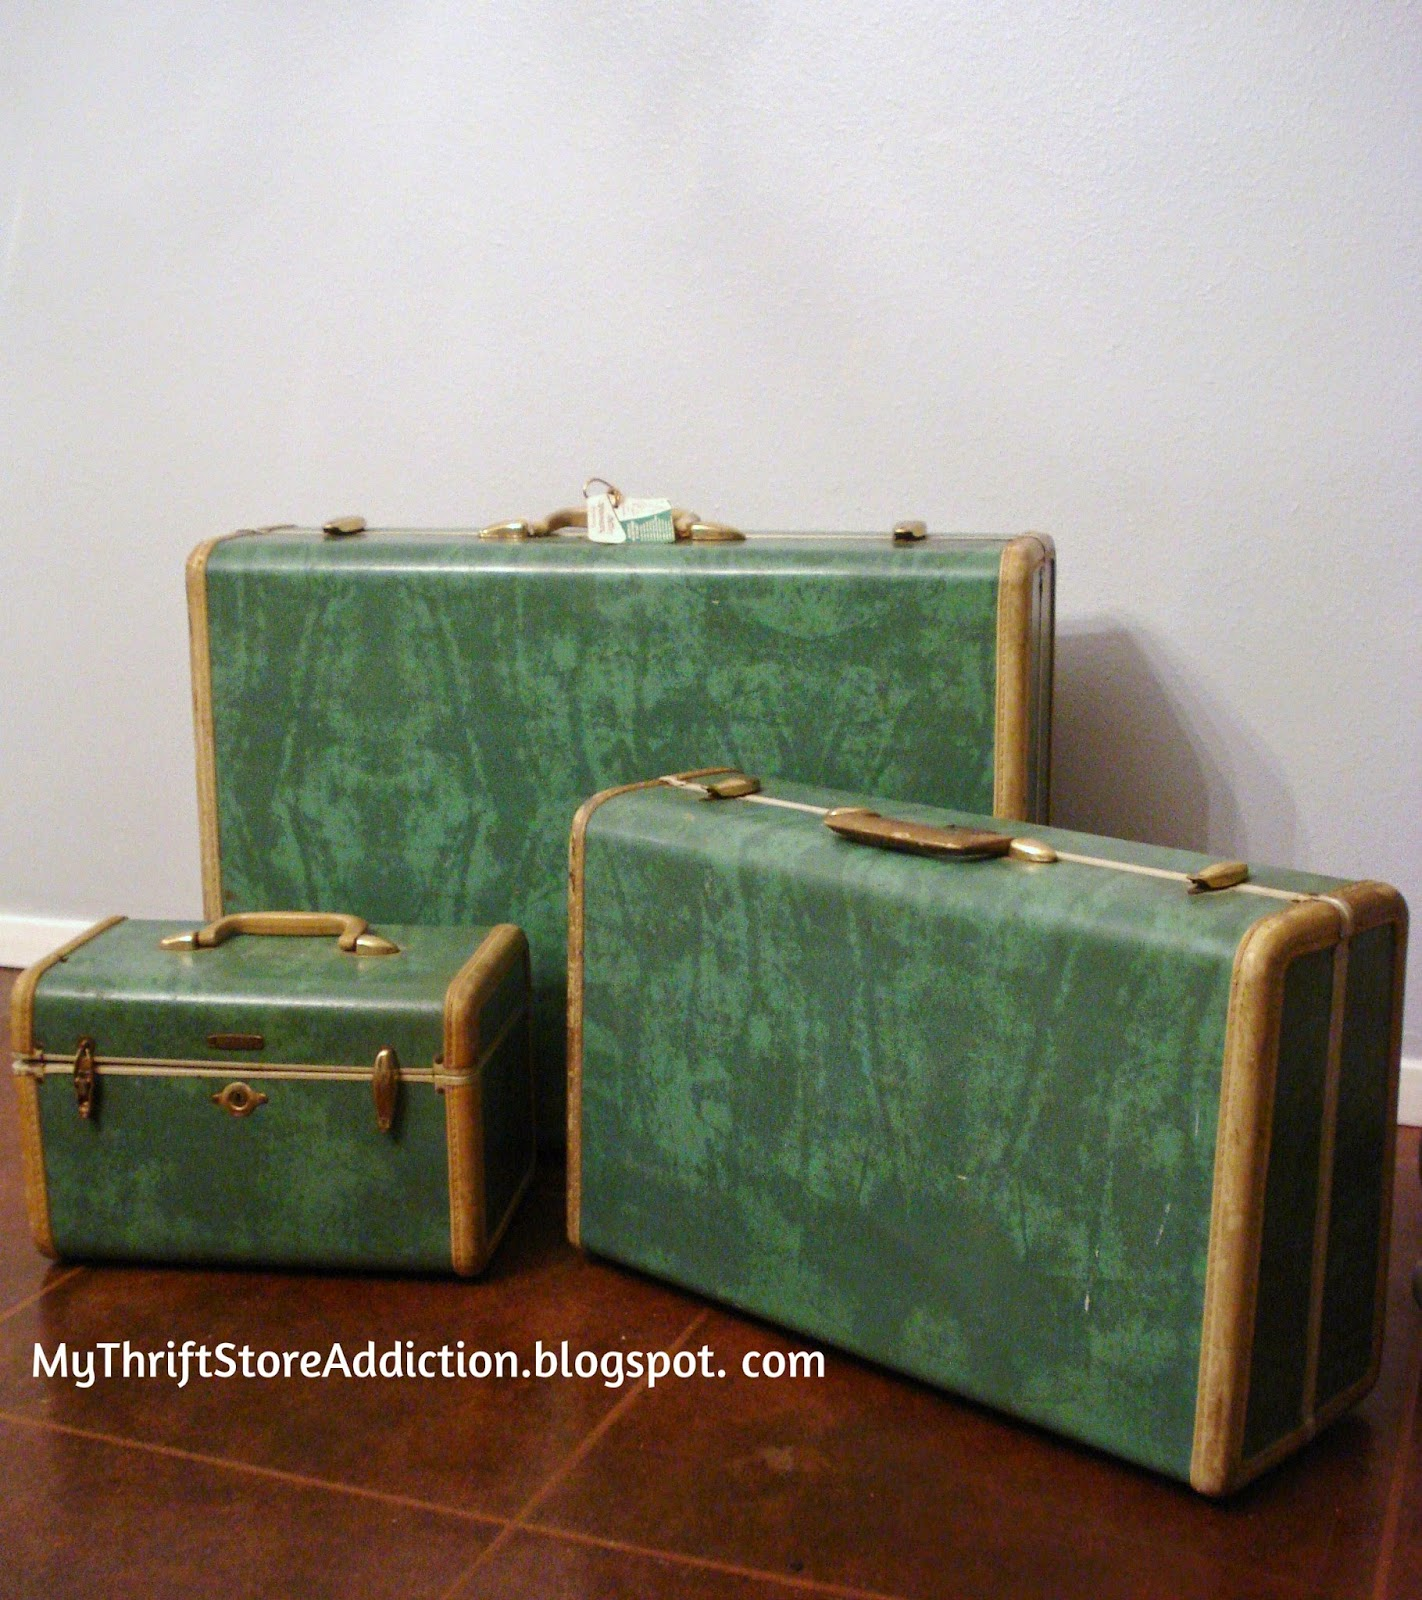 My Thrift Store Addiction : Friday's Find: Vintage Luggage